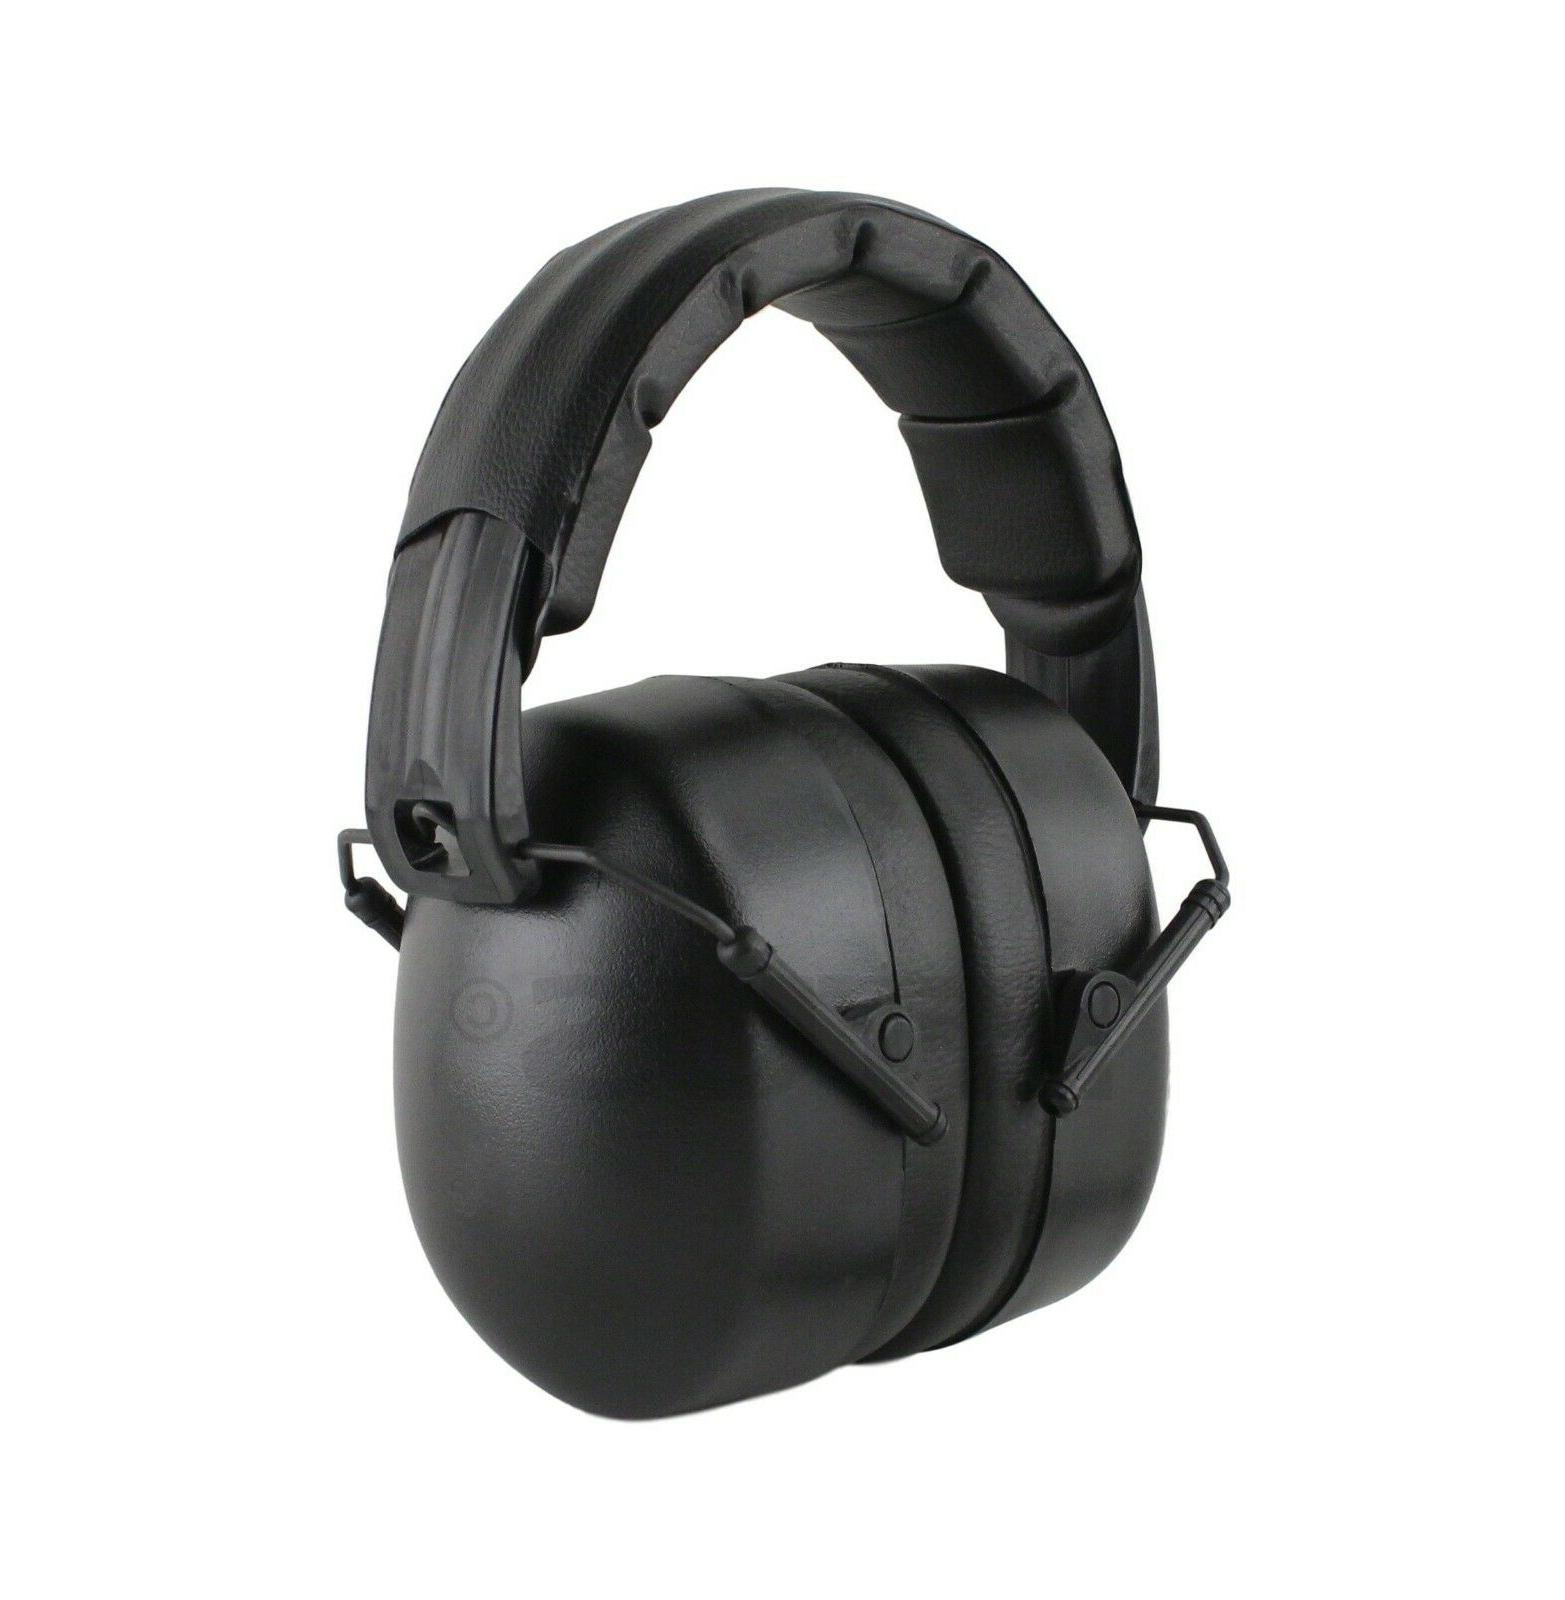 highest 37 nrr earmuff hearing impact protection